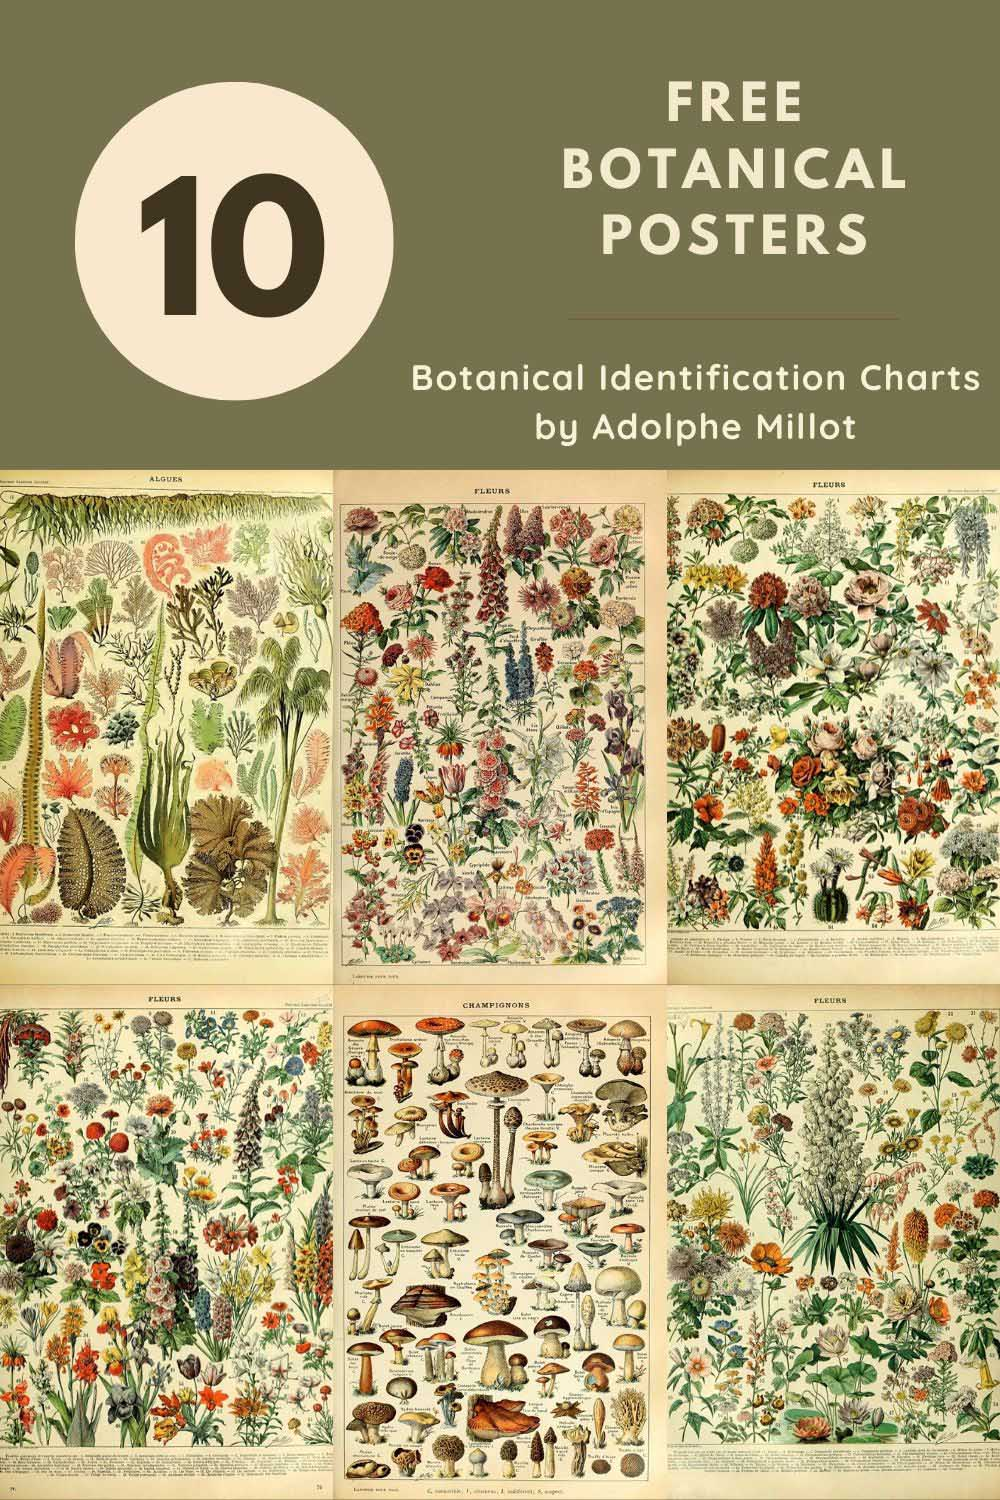 Adolphe Millot Botanical Posters